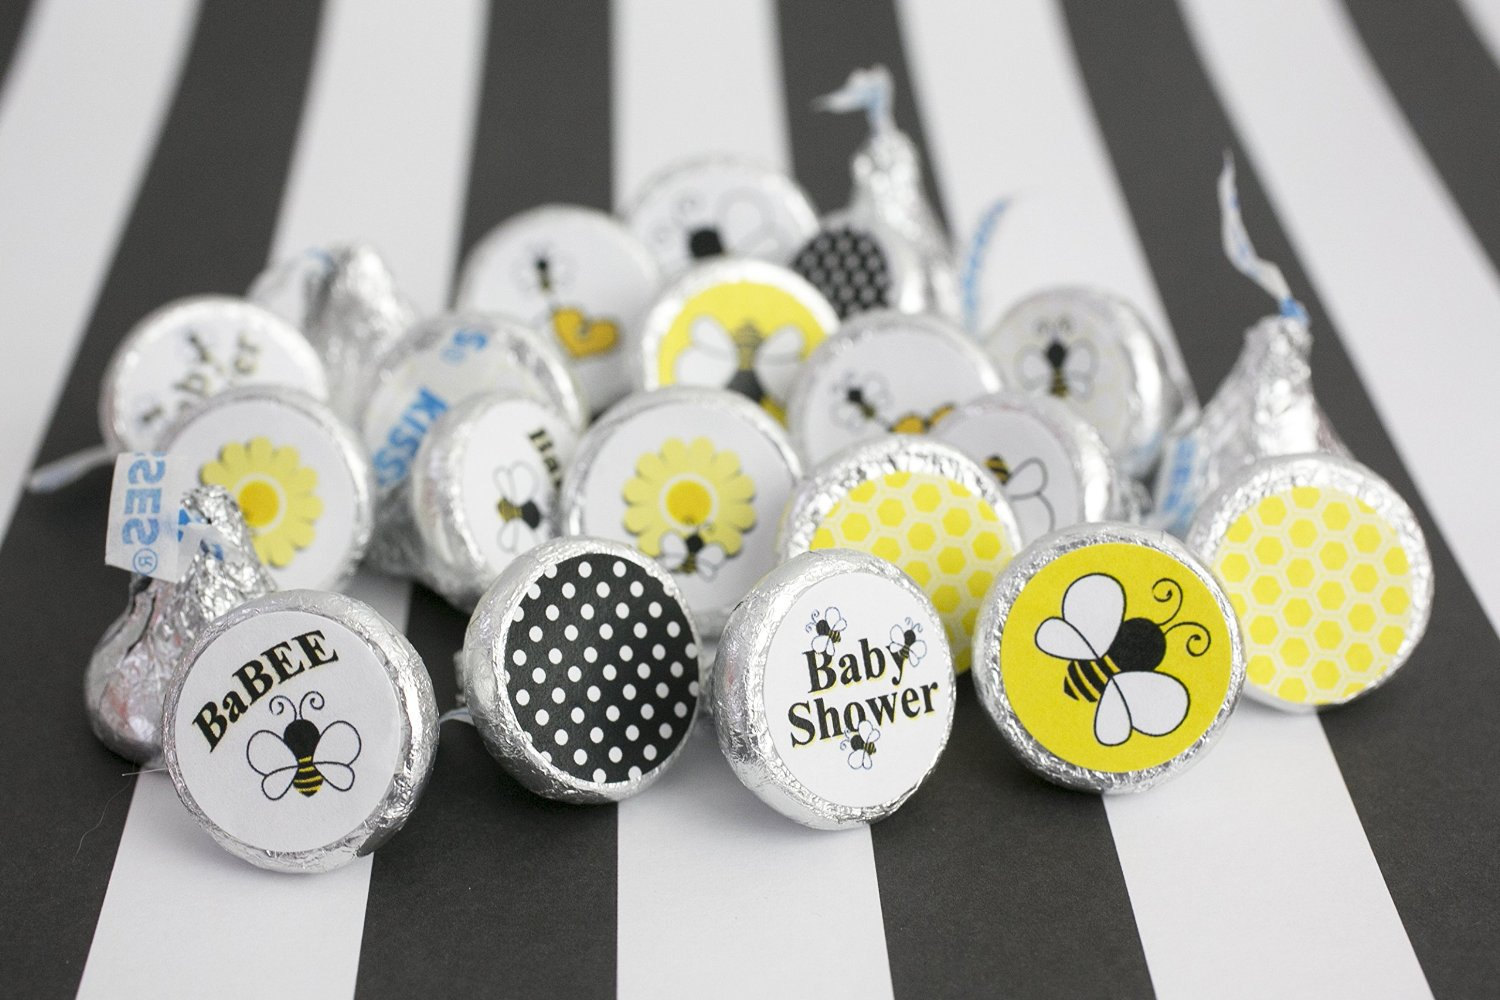 Bumble Bee Baby Shower Favor Decoration Stickers For Hershey Kisses Envelope Seals Miniature